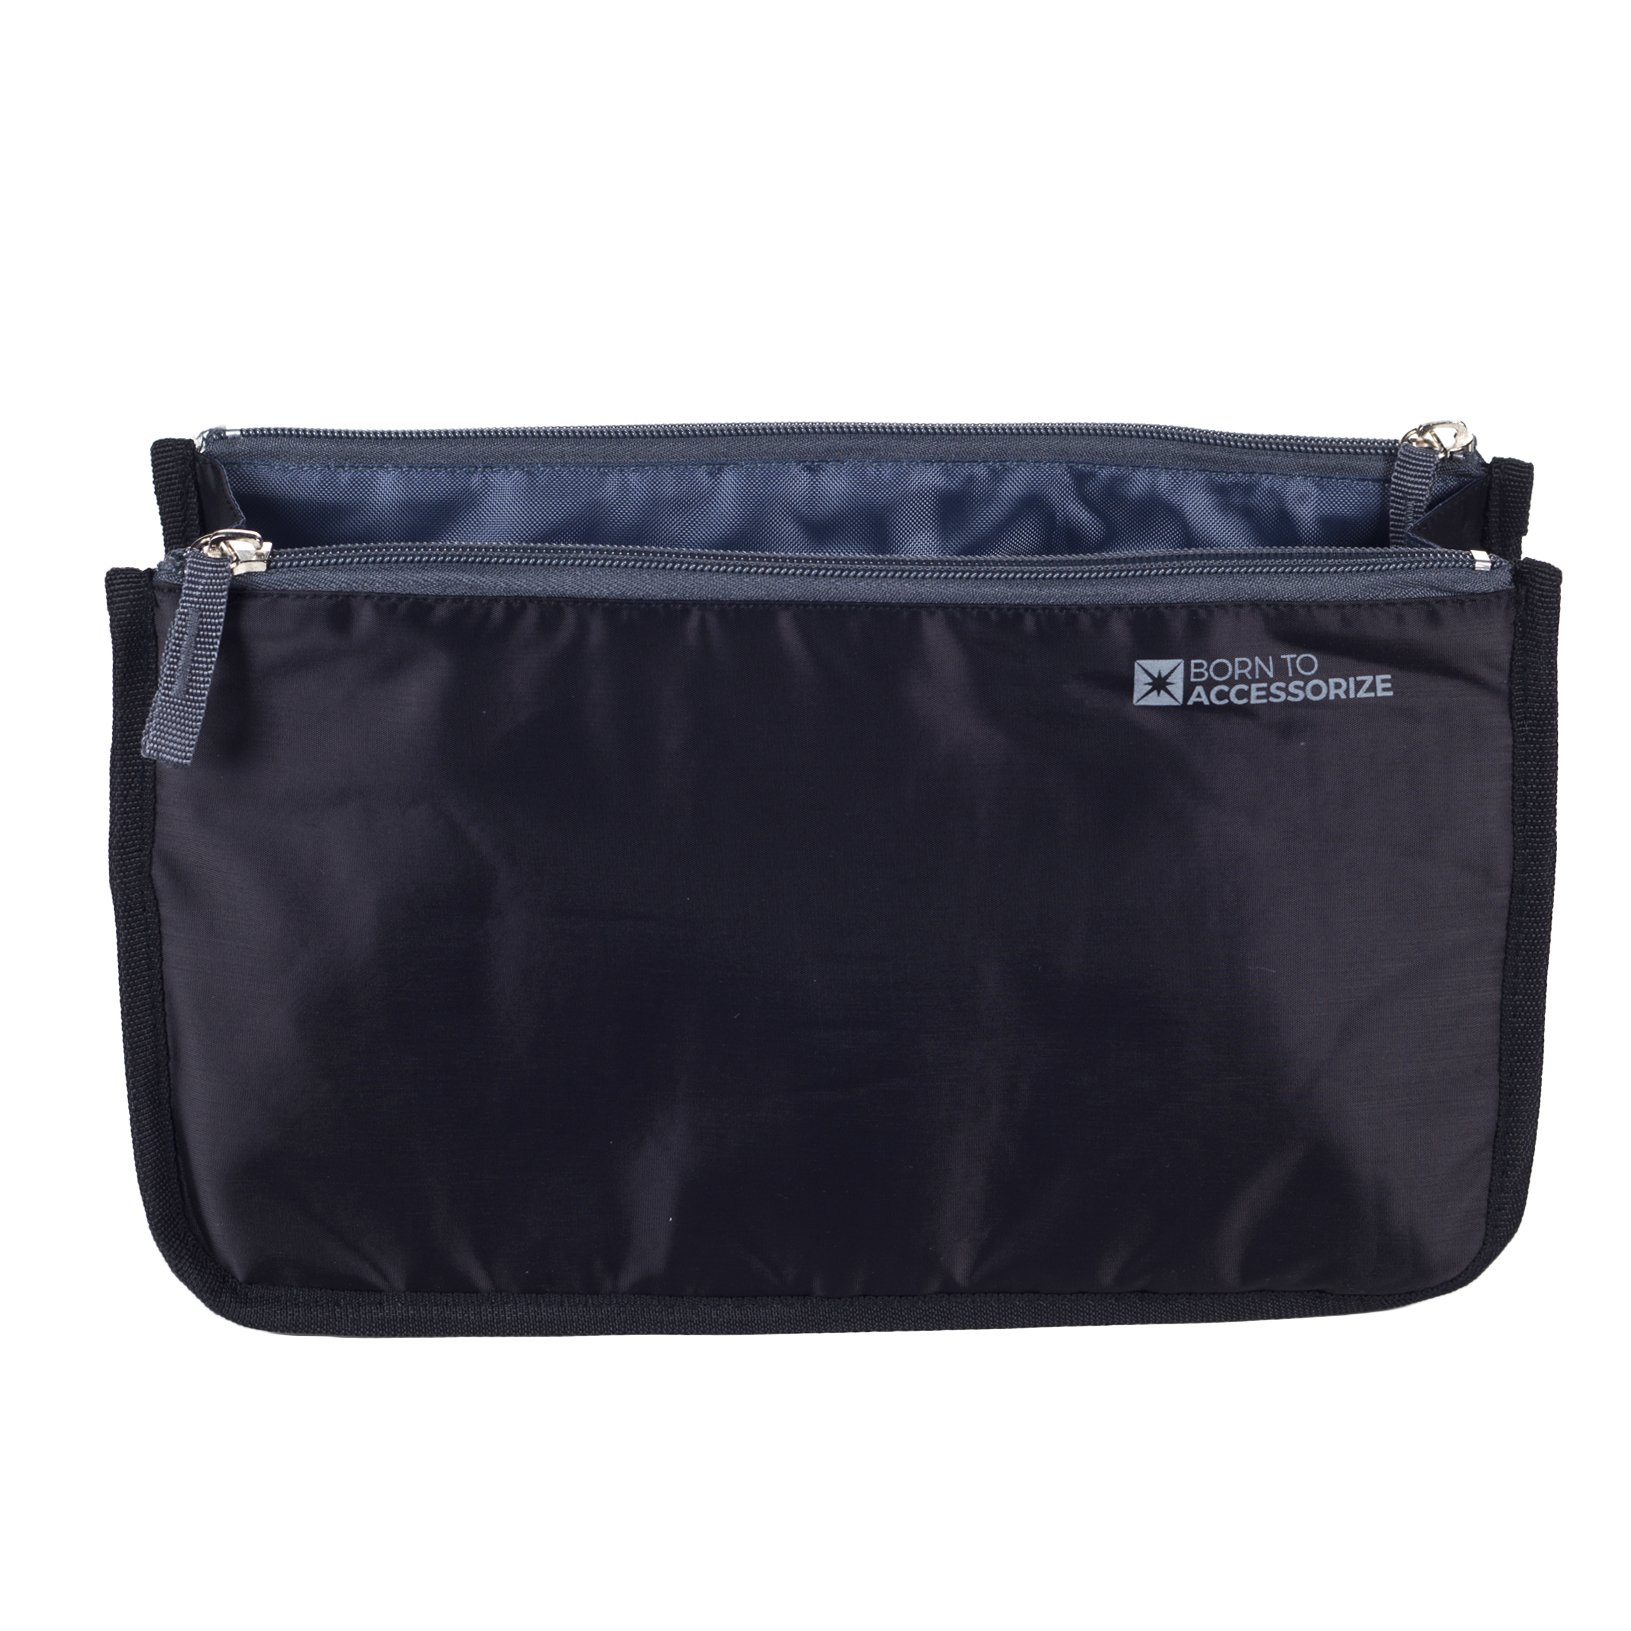 Premium Handbag Organizer - Sturdy Non-Collapsible Insert w/13 Pockets for Every Woman's Life Style (Large, Black-White)